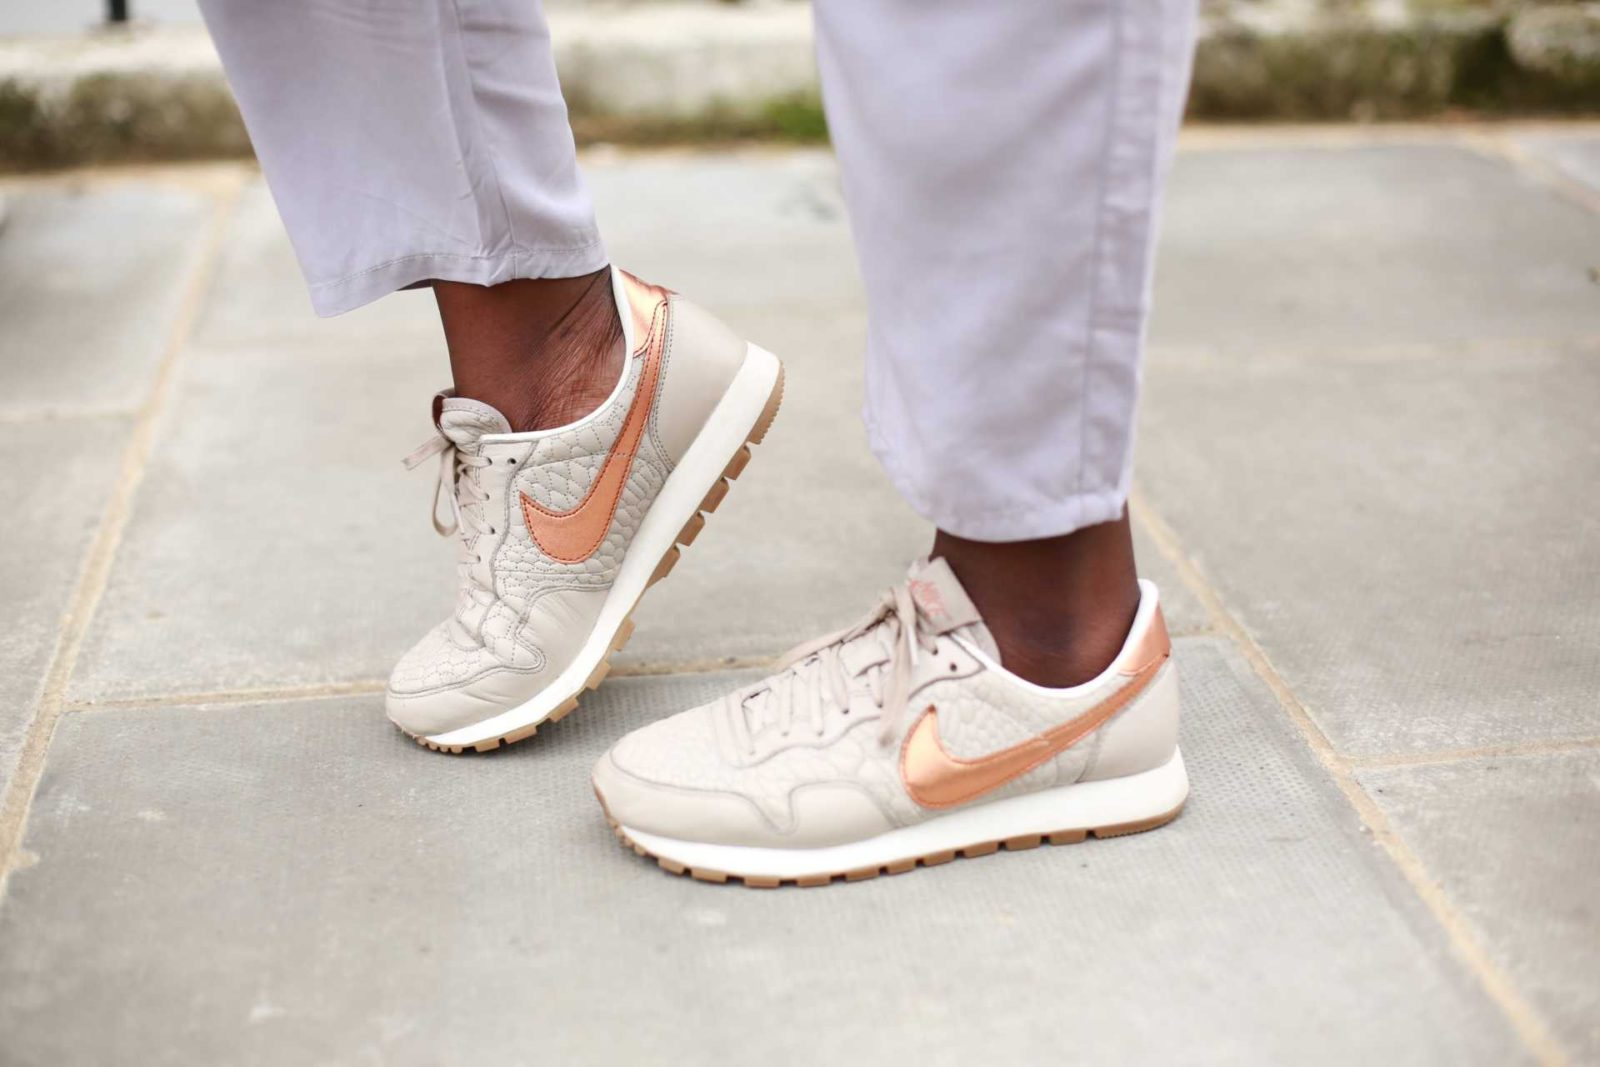 Nike Pegasus Rose Gold 2 - 6 Steps to Follow your Dreams - Style and the Sass